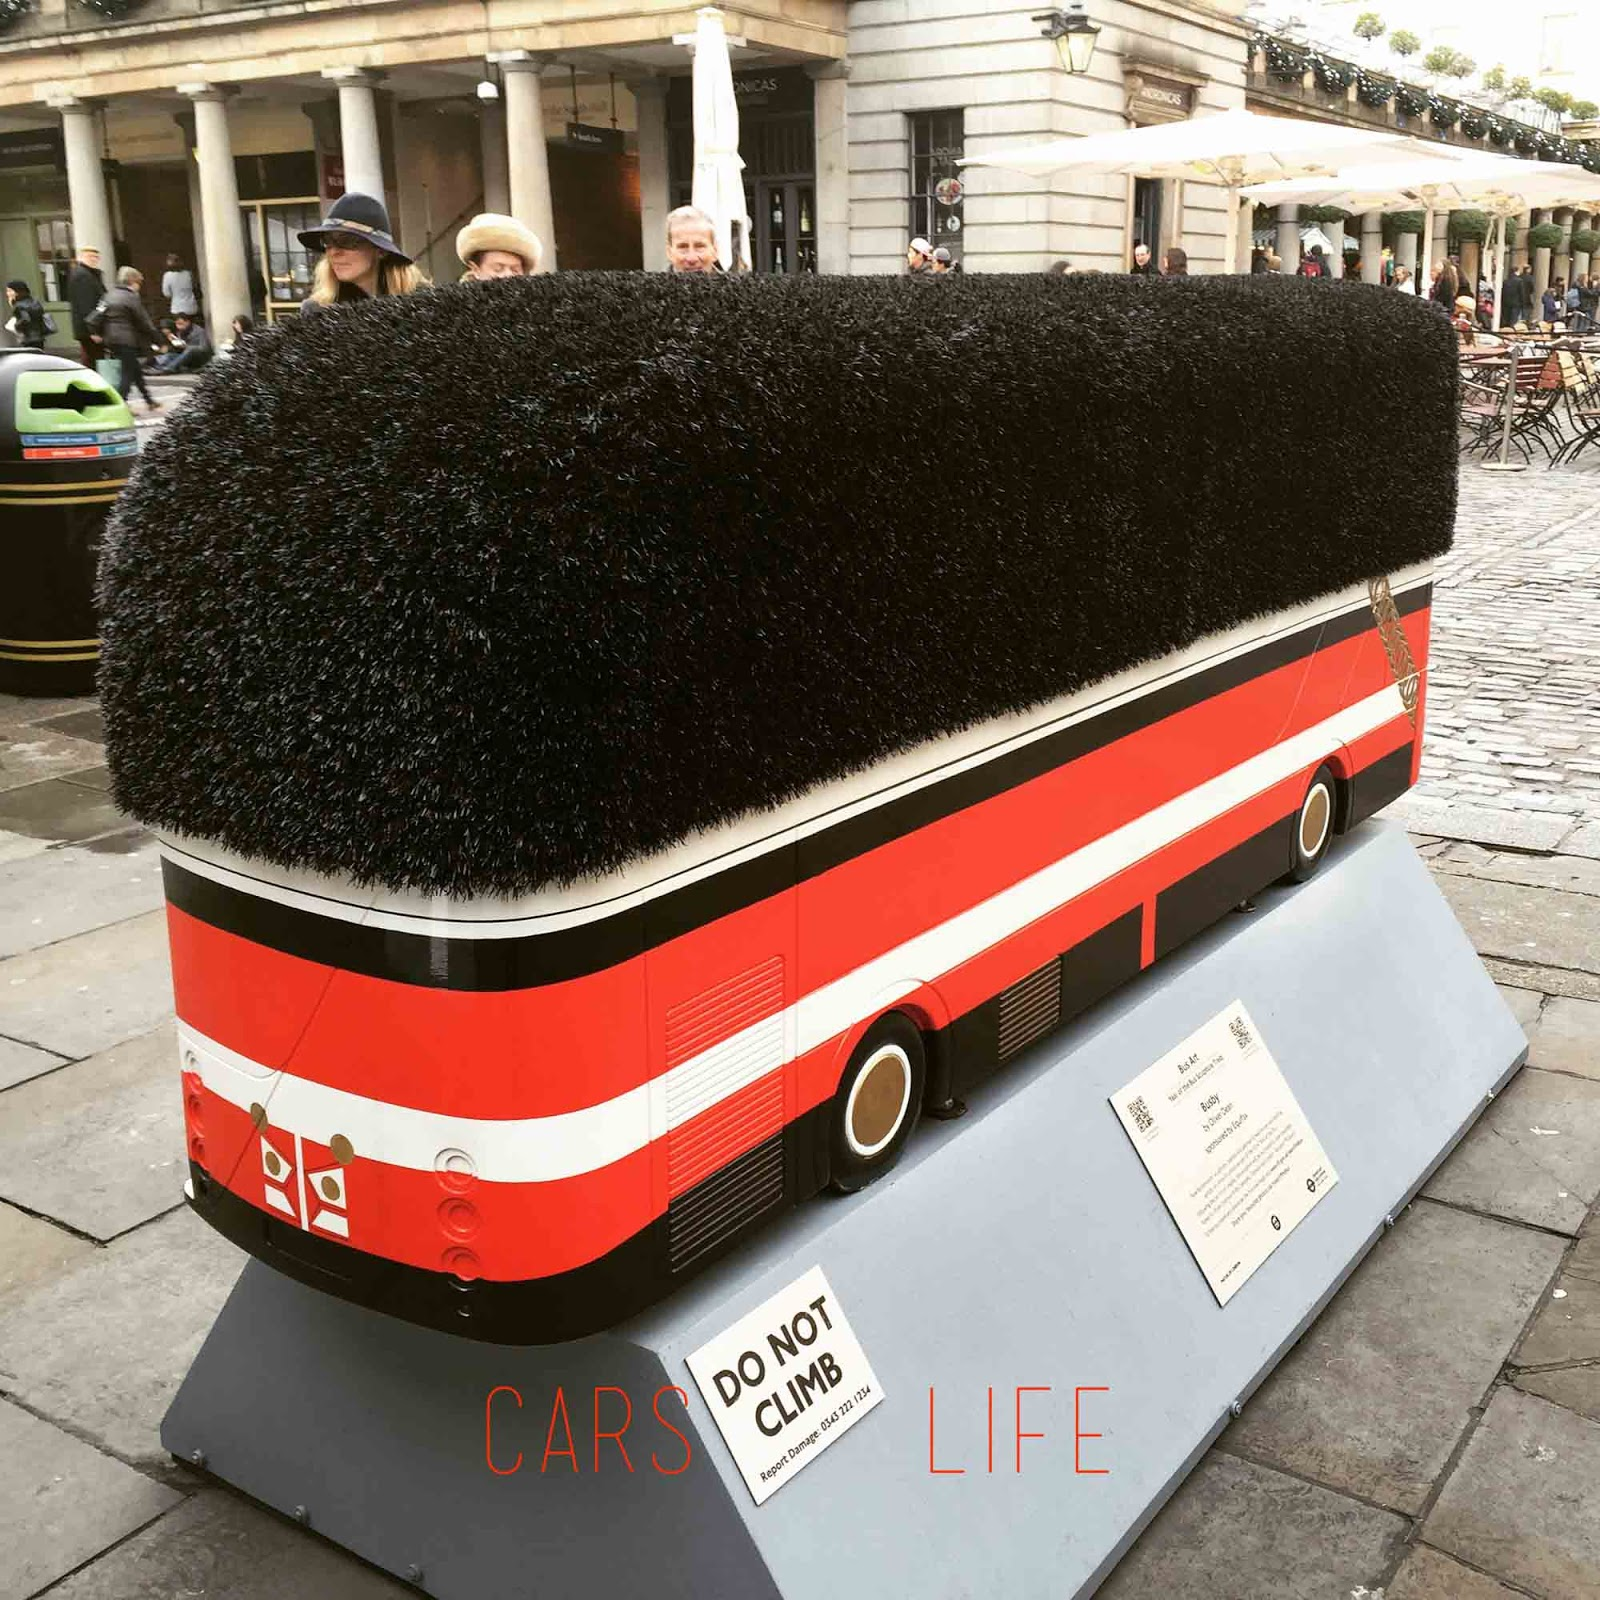 Bus Art Busby by Olive Dean | Covent Garden